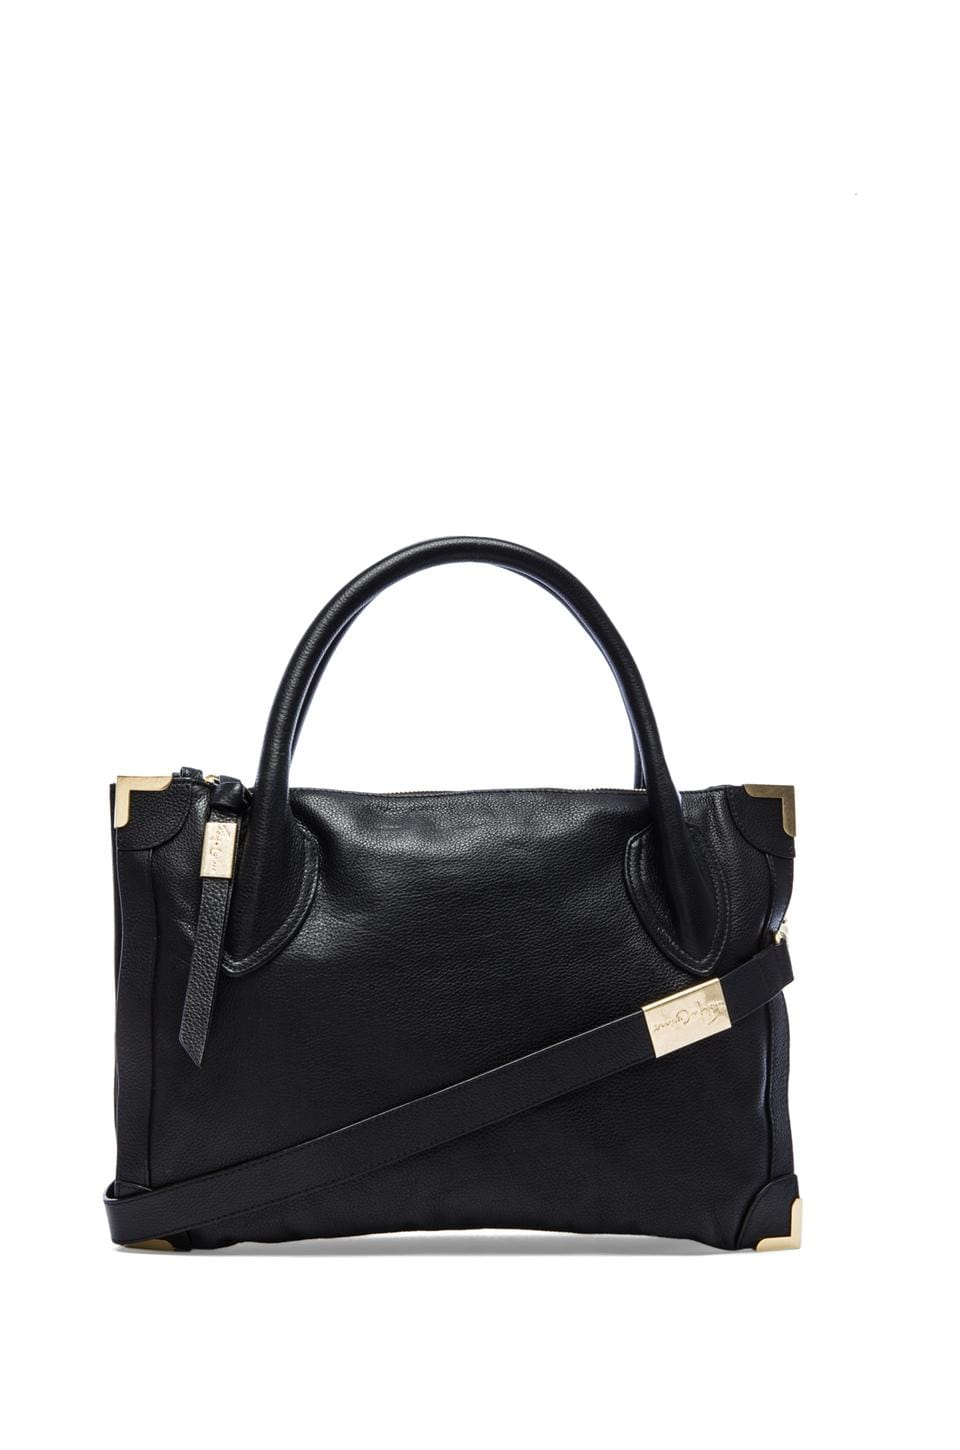 Foley + Corinna Framed Satchel in Black